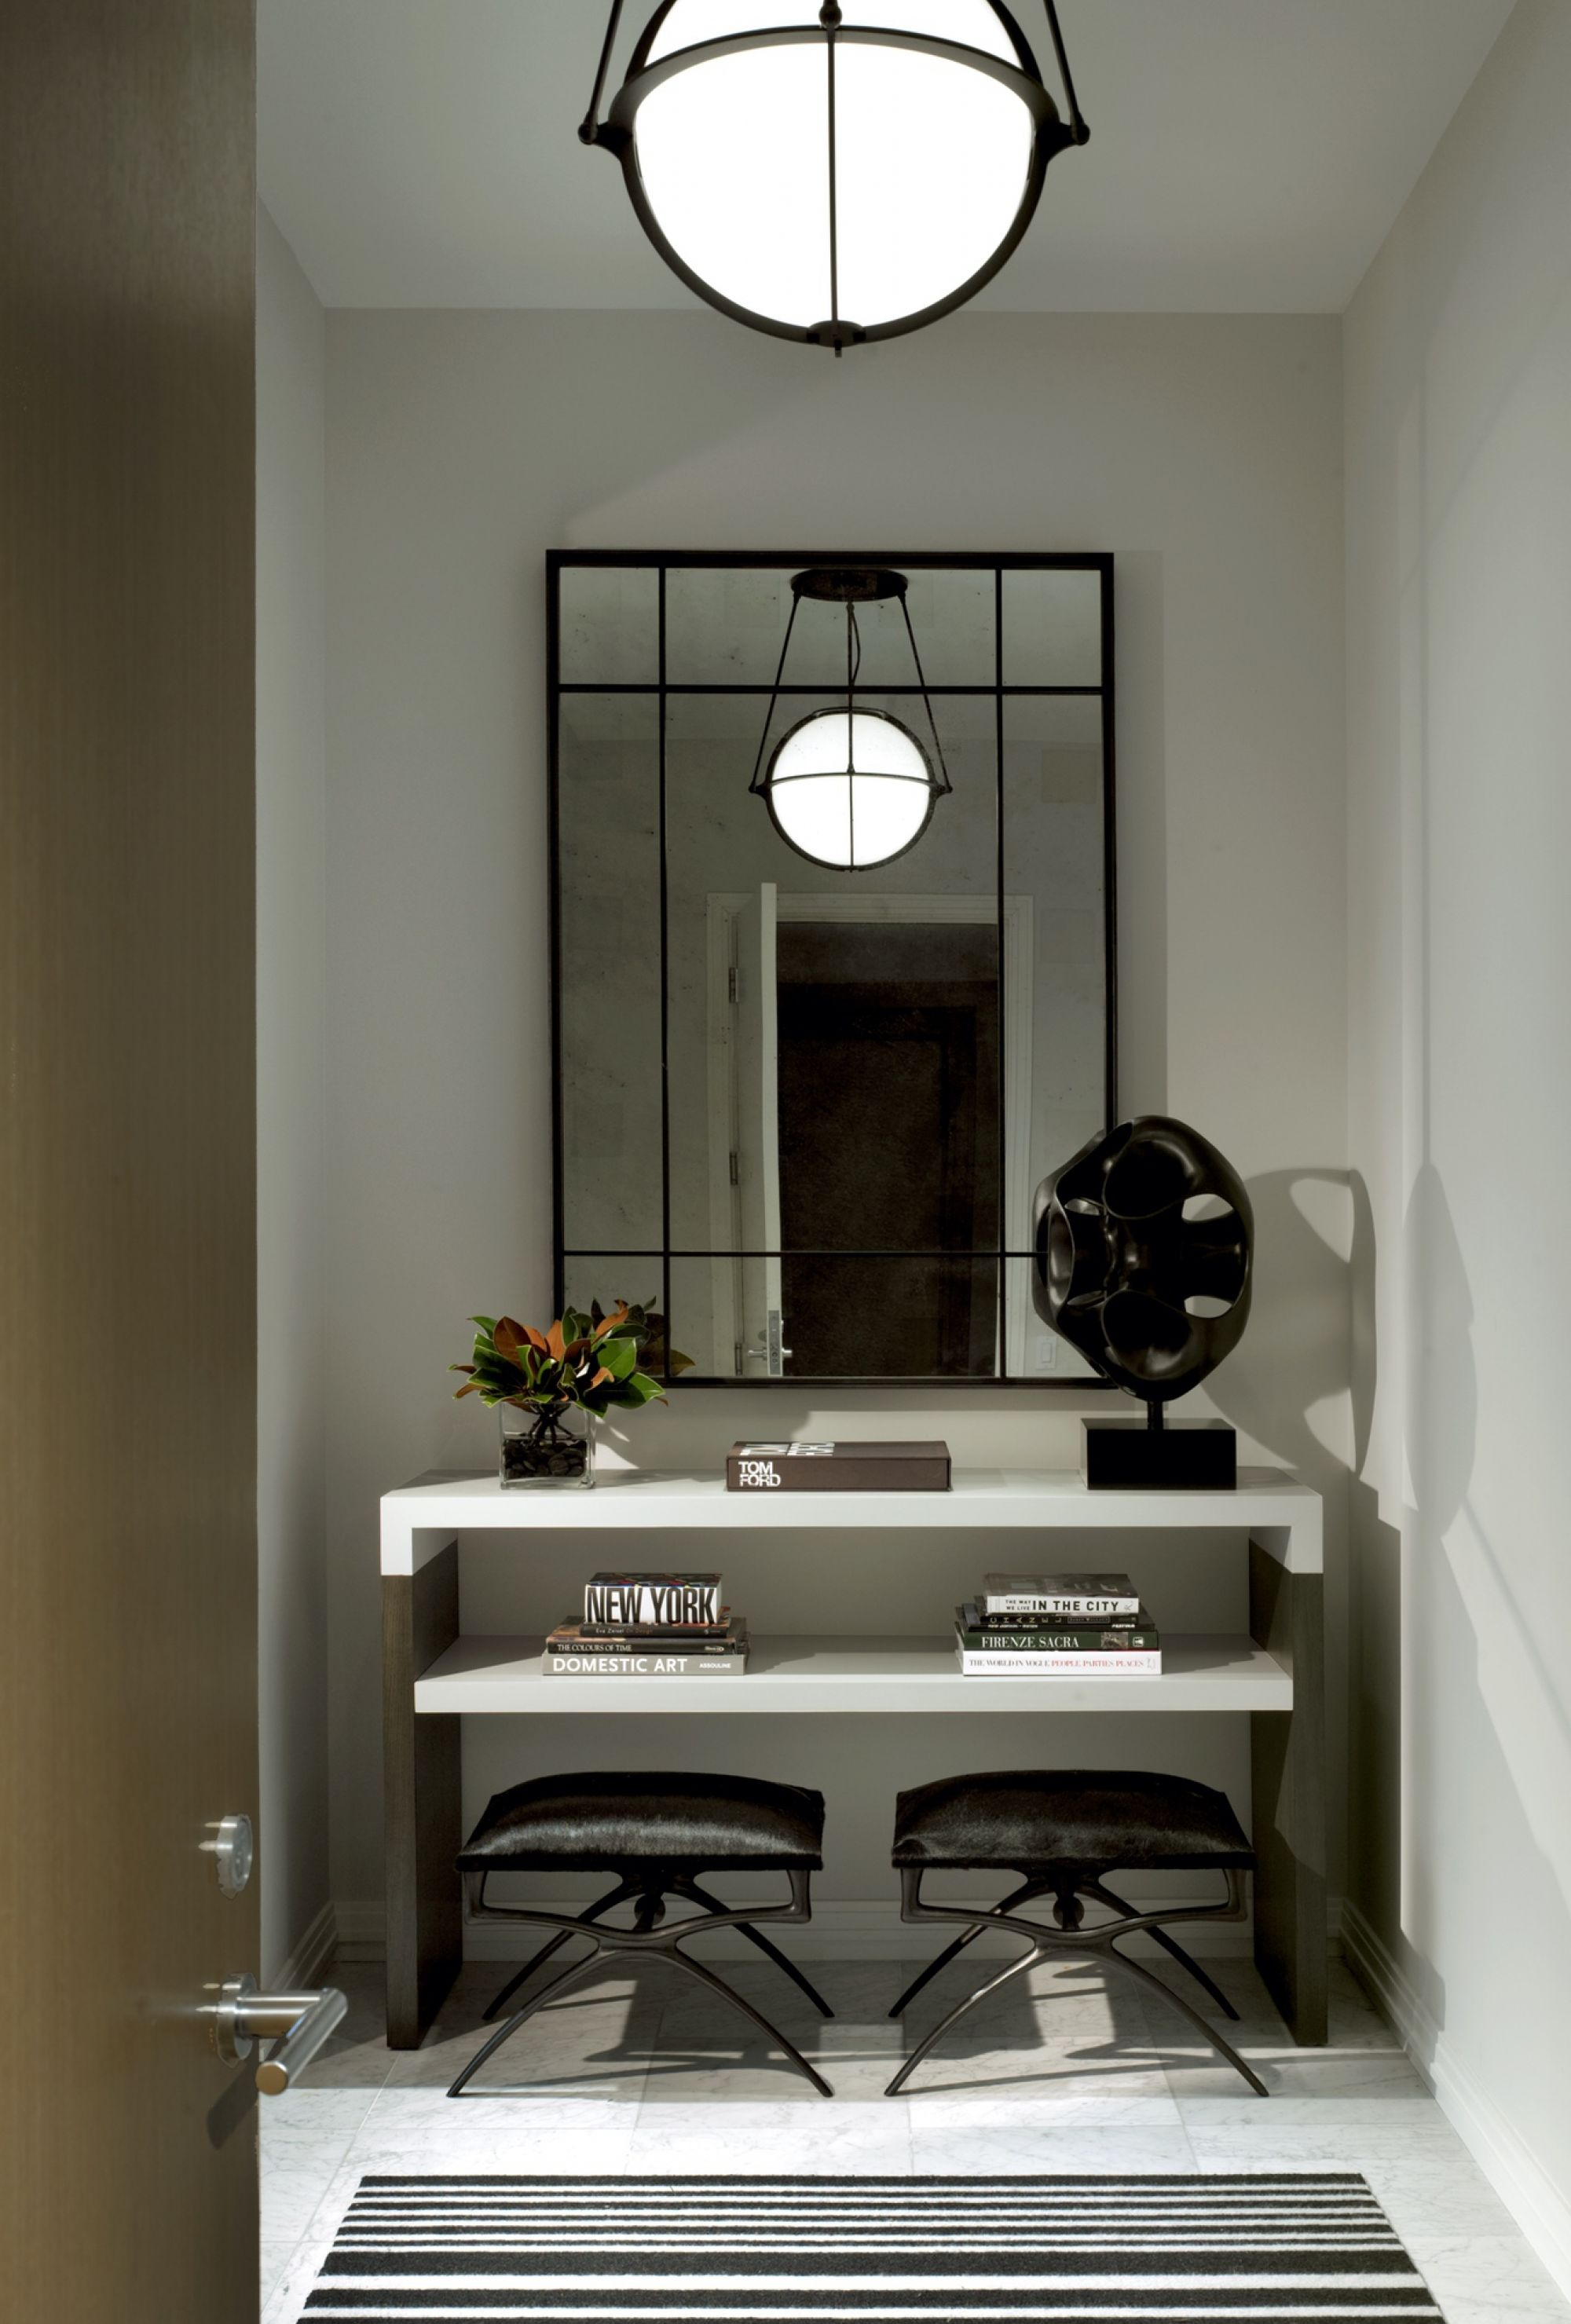 A tiny alcove becomes an impressive grand entrance with the right trappings. Photo: JLI Oak Street Pied-a-Terre